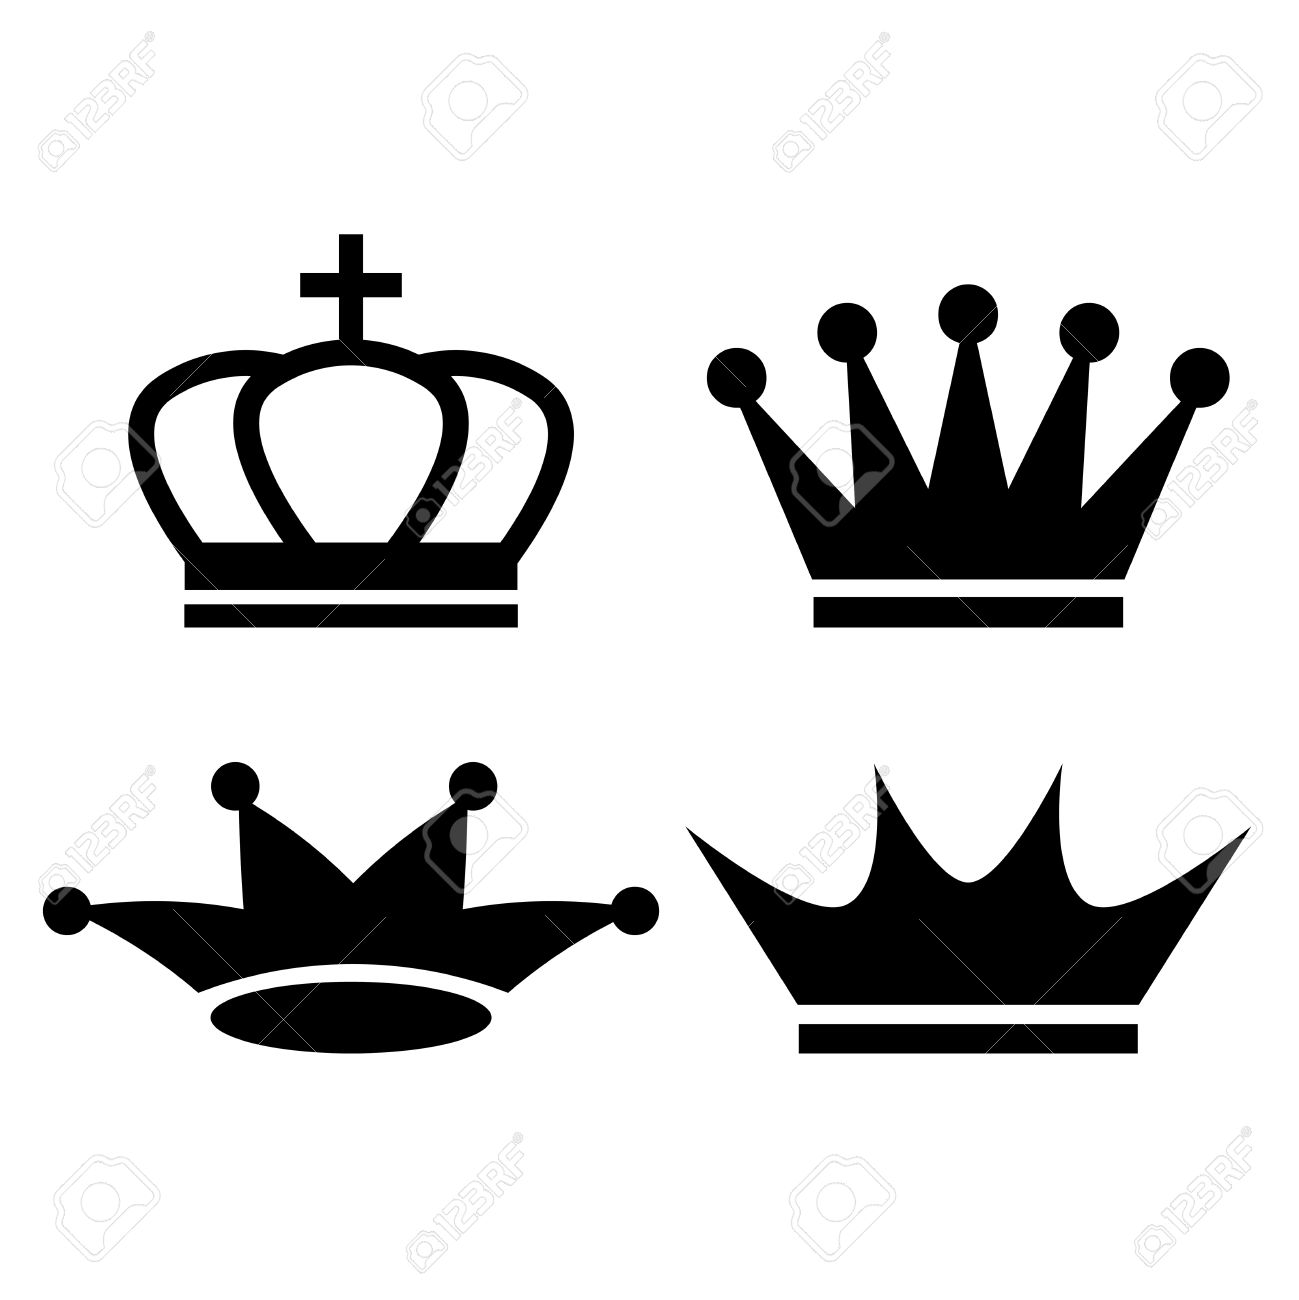 king crown icon royalty free cliparts vectors and stock rh 123rf com king's crown vector image Black and White King Crown